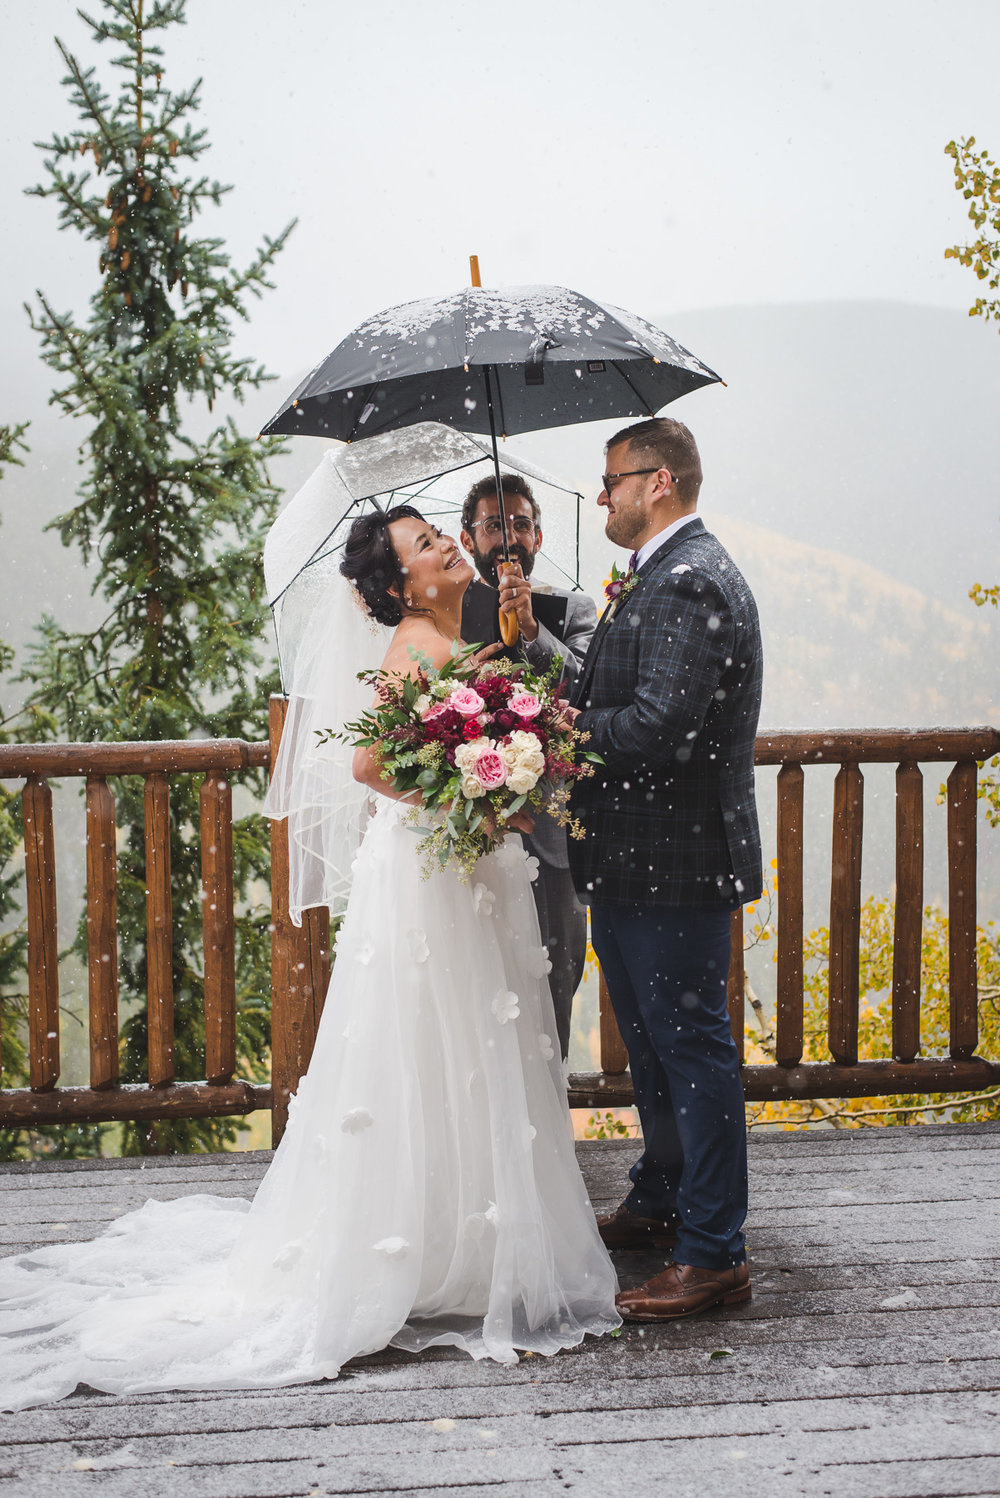 autumn snowy elopement at The lodge at breckenridge in the colorado mountains | keeping composure photography + summit mountain weddings